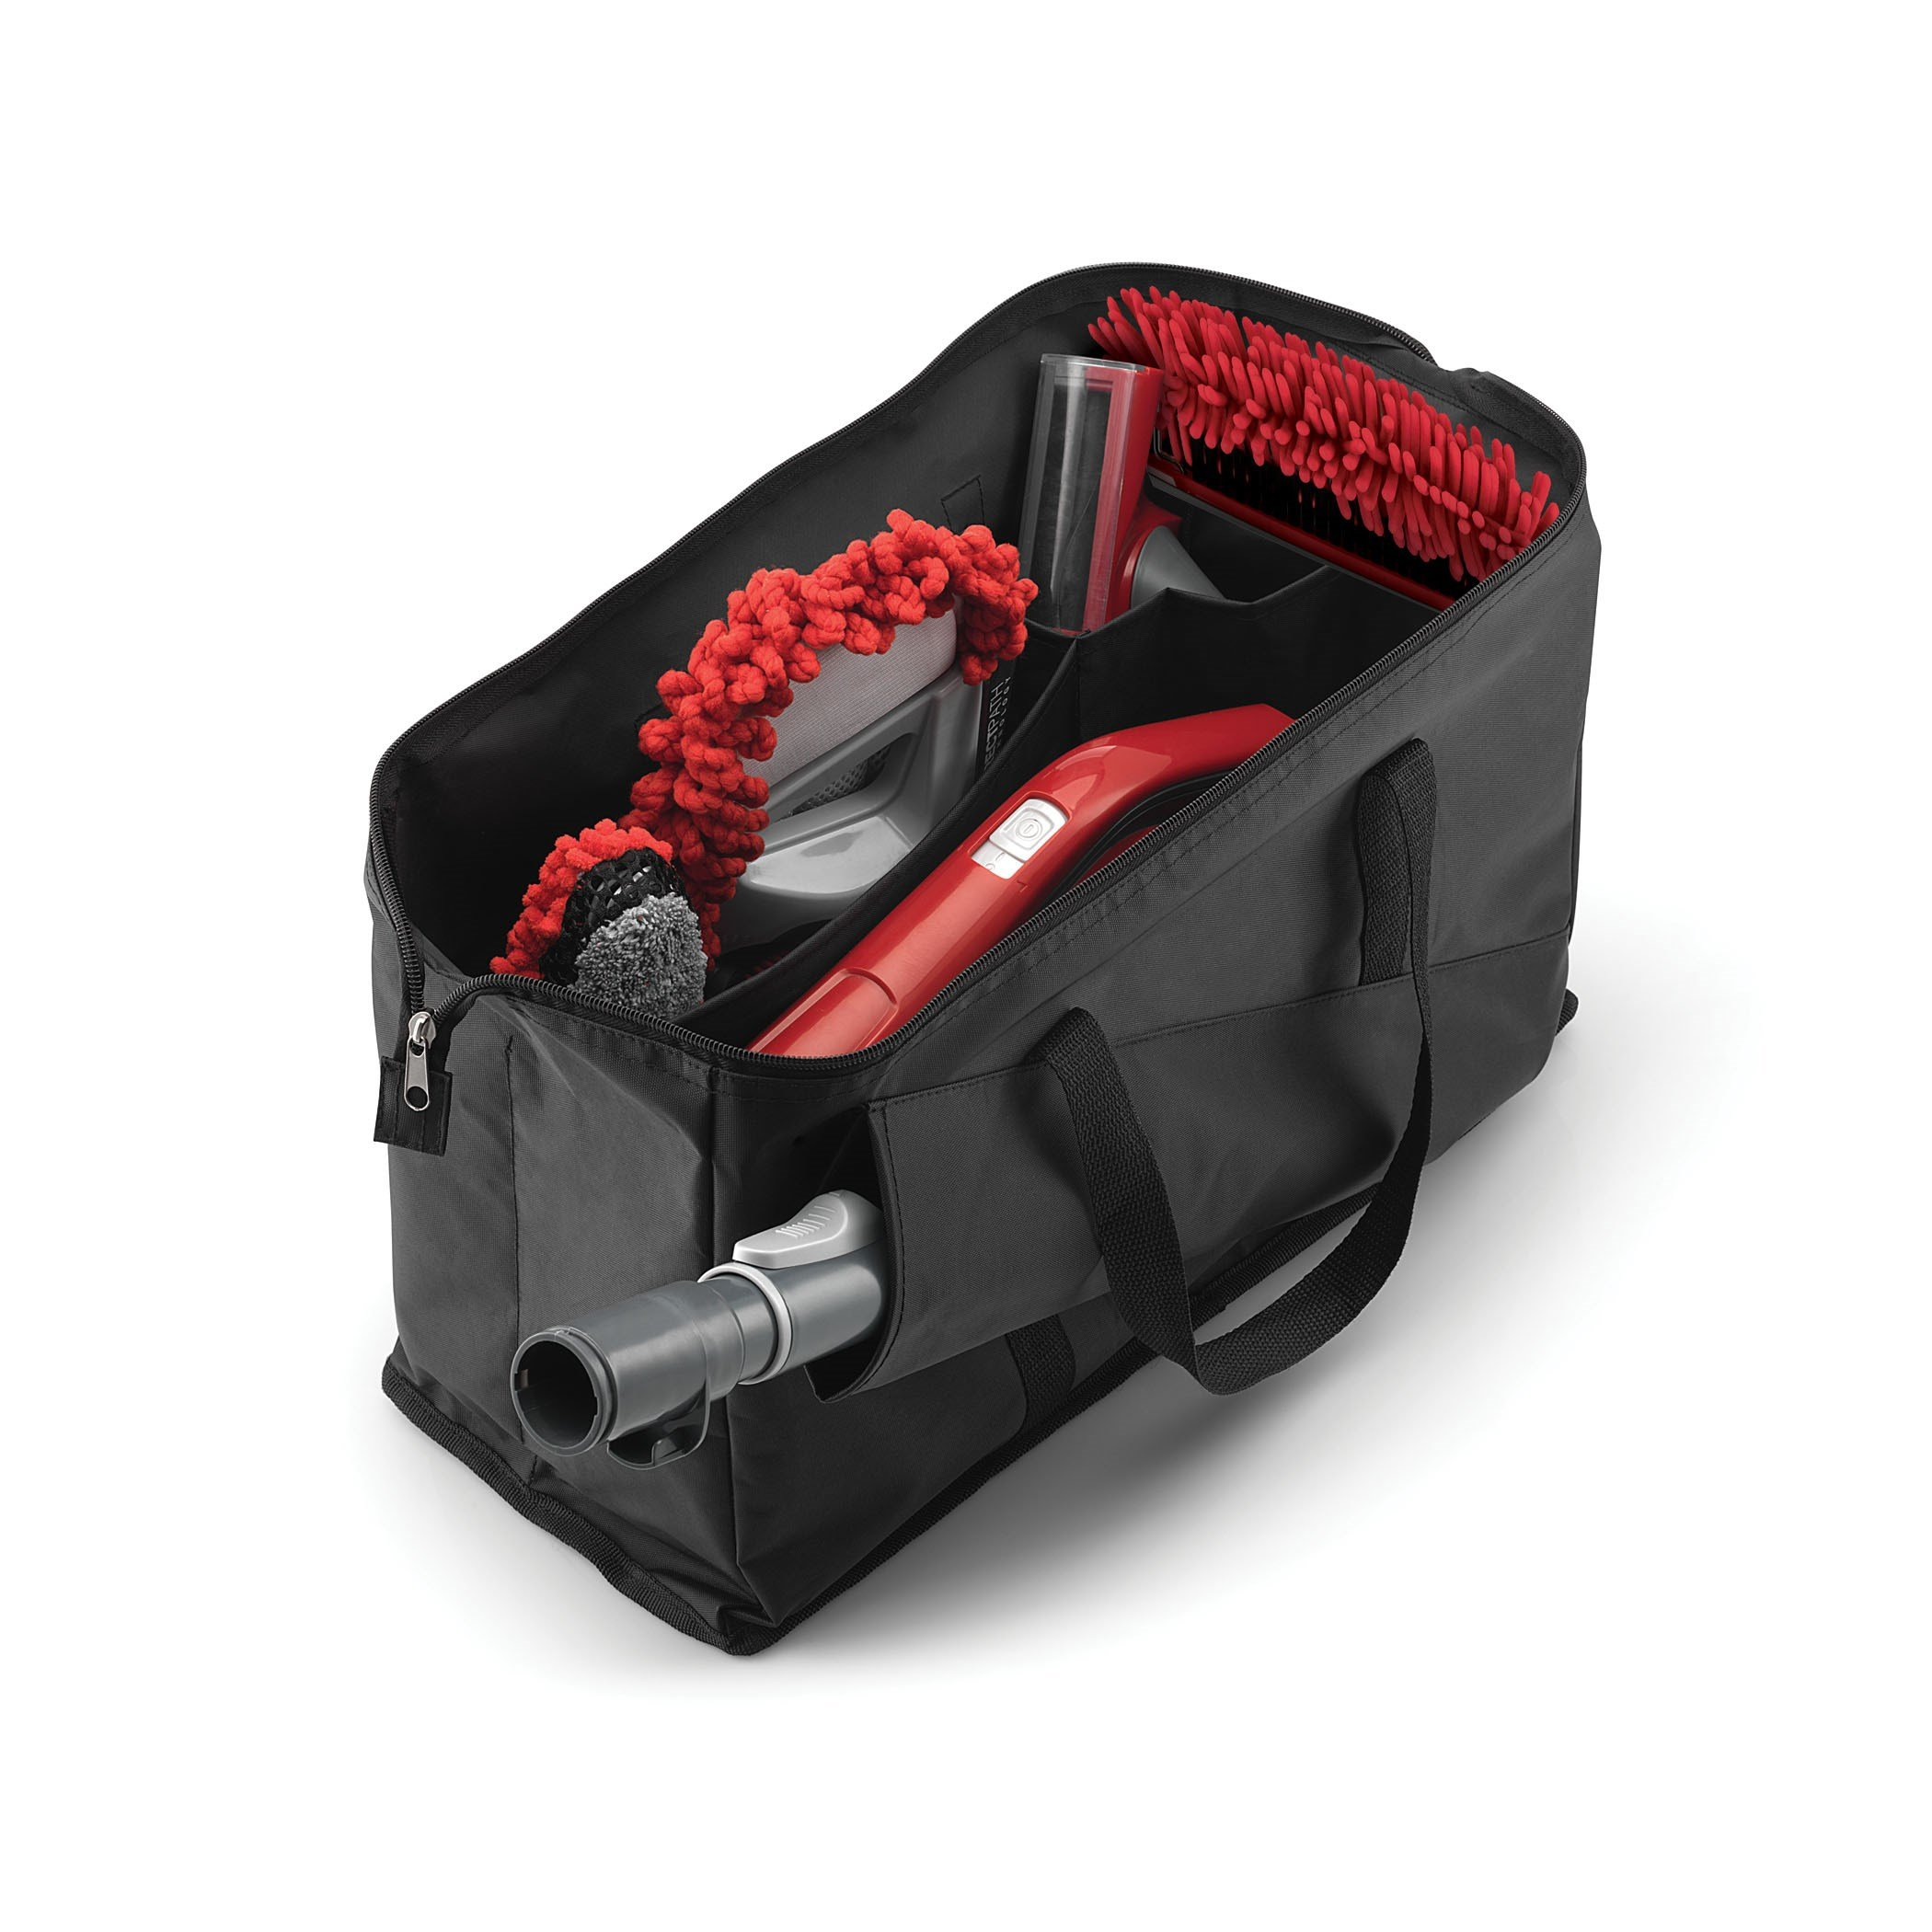 Dirt Devil Vacuum Cleaner 360 Reach Pro Corded Bagless Stick and Handheld Vacuum SD12515B by Dirt Devil (Image #6)